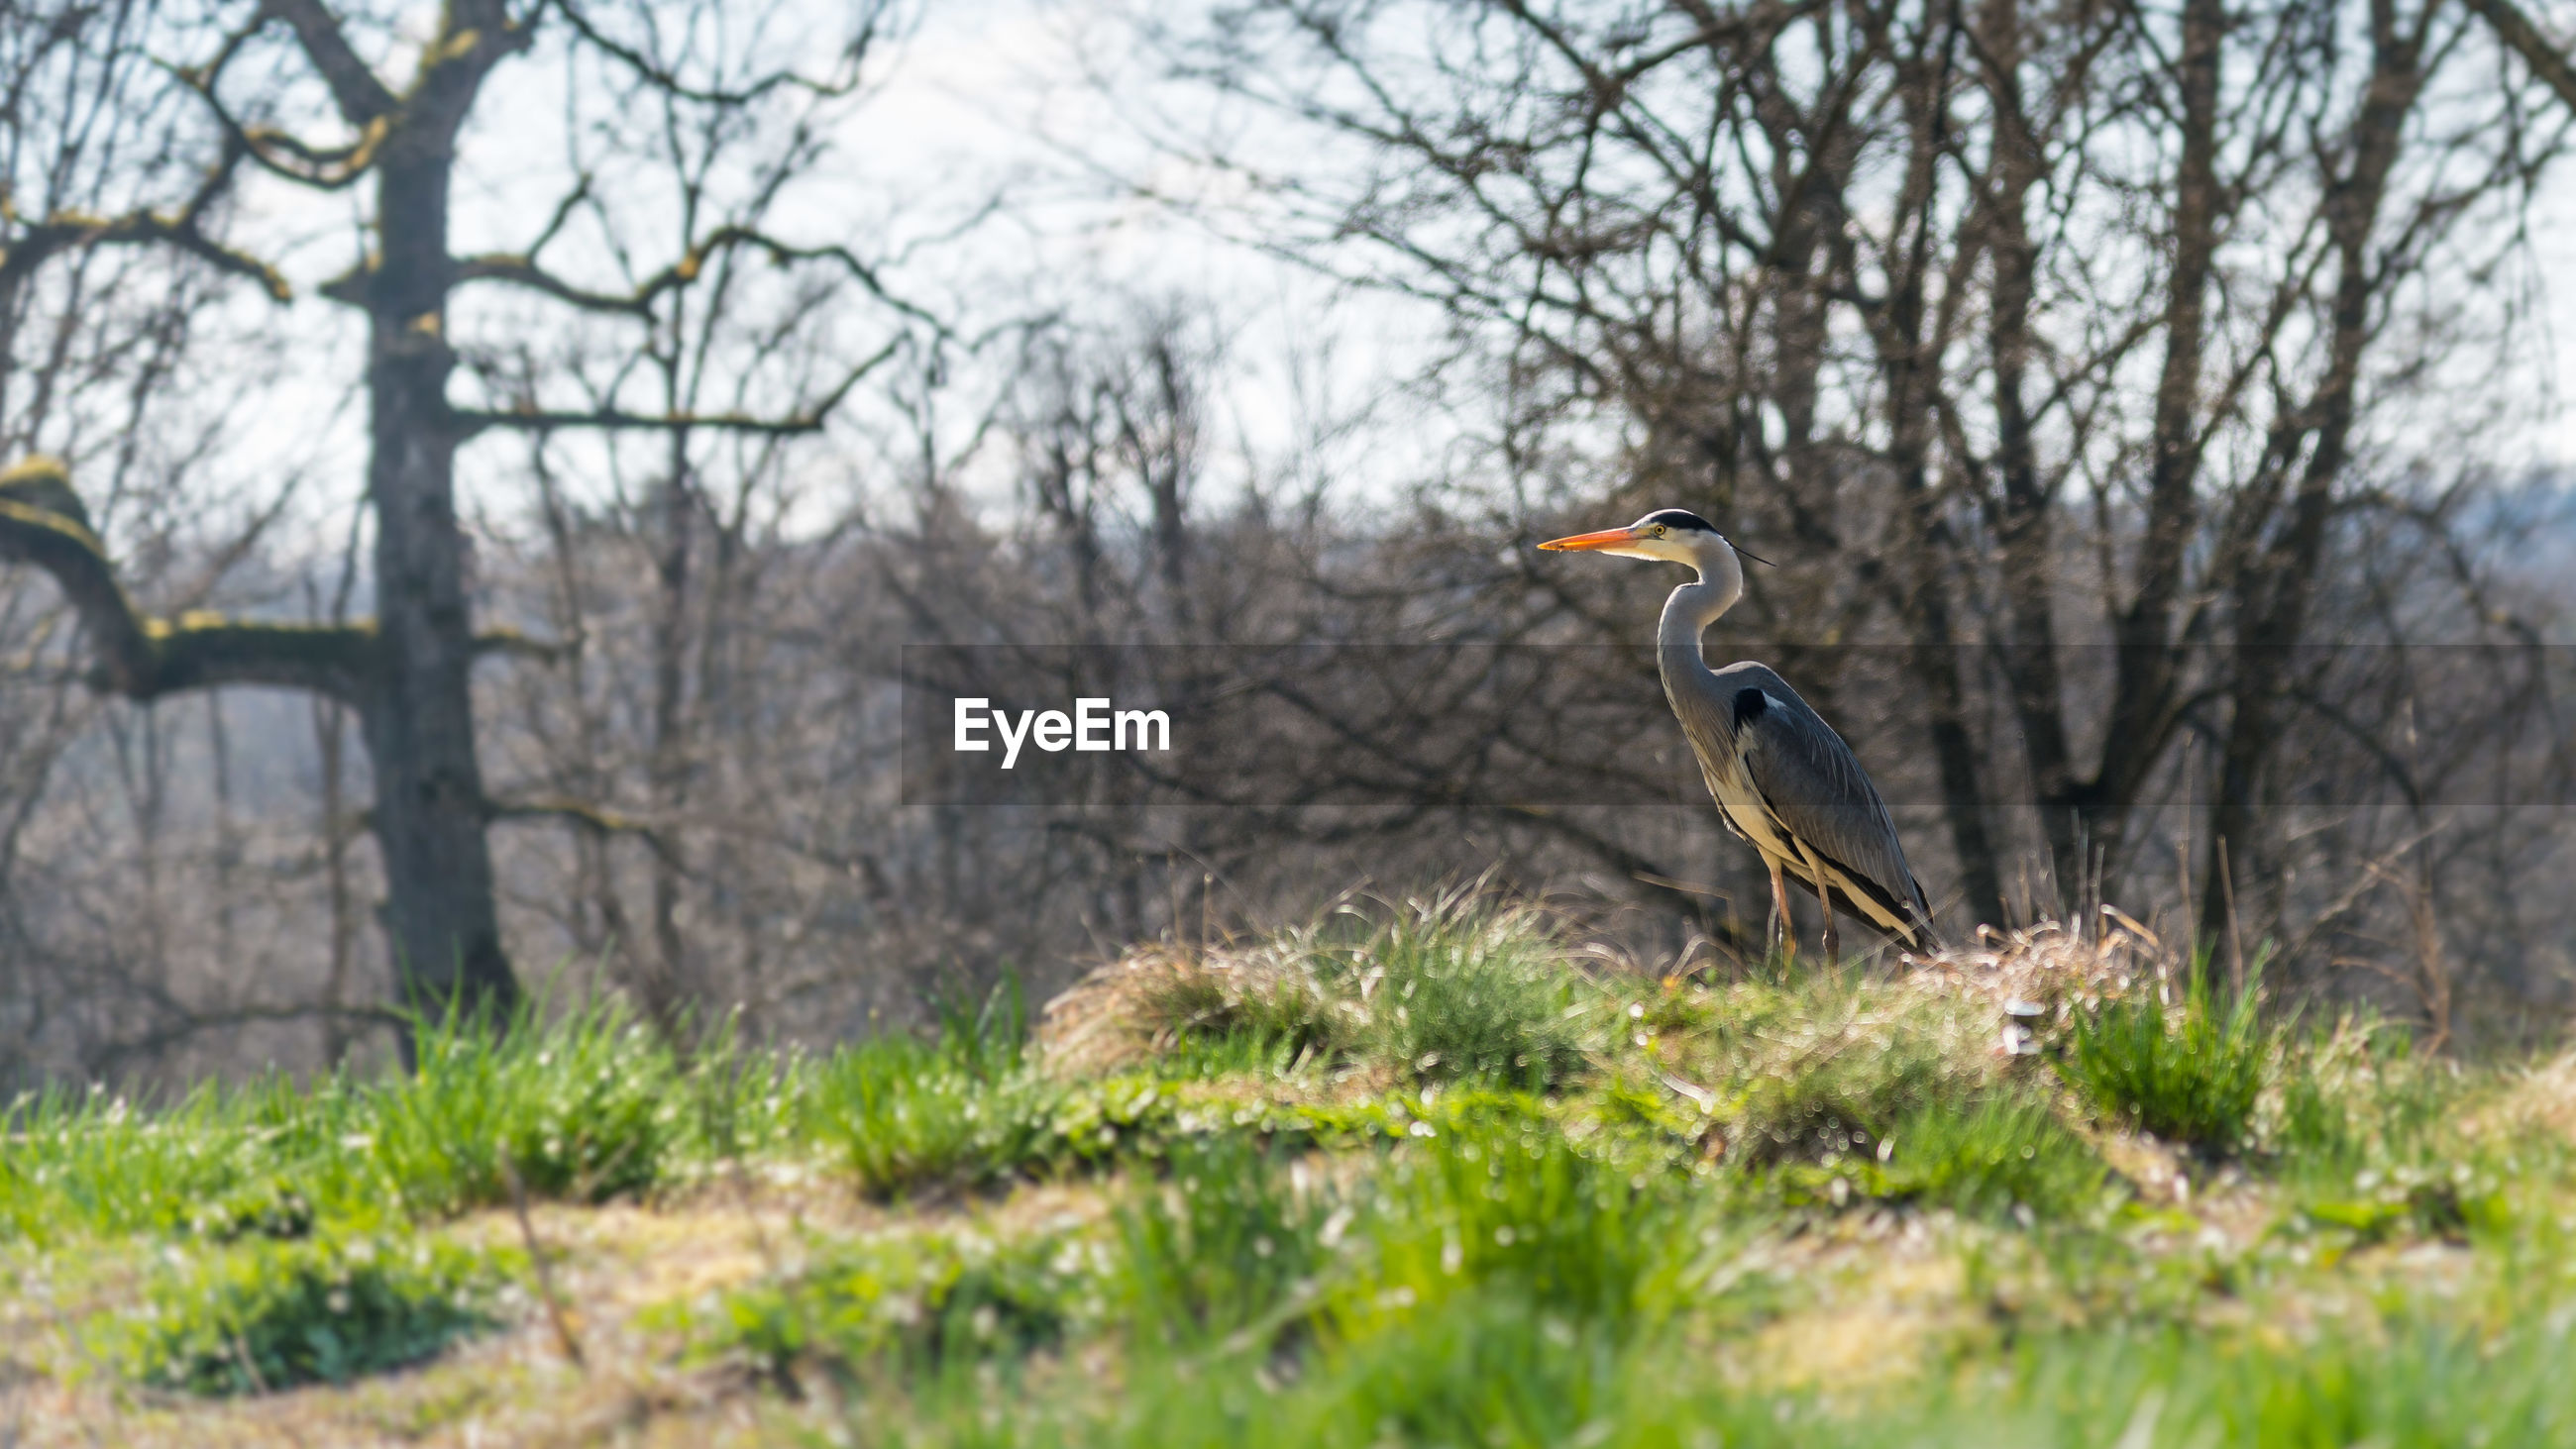 HIGH ANGLE VIEW OF HERON PERCHING ON BARE TREES